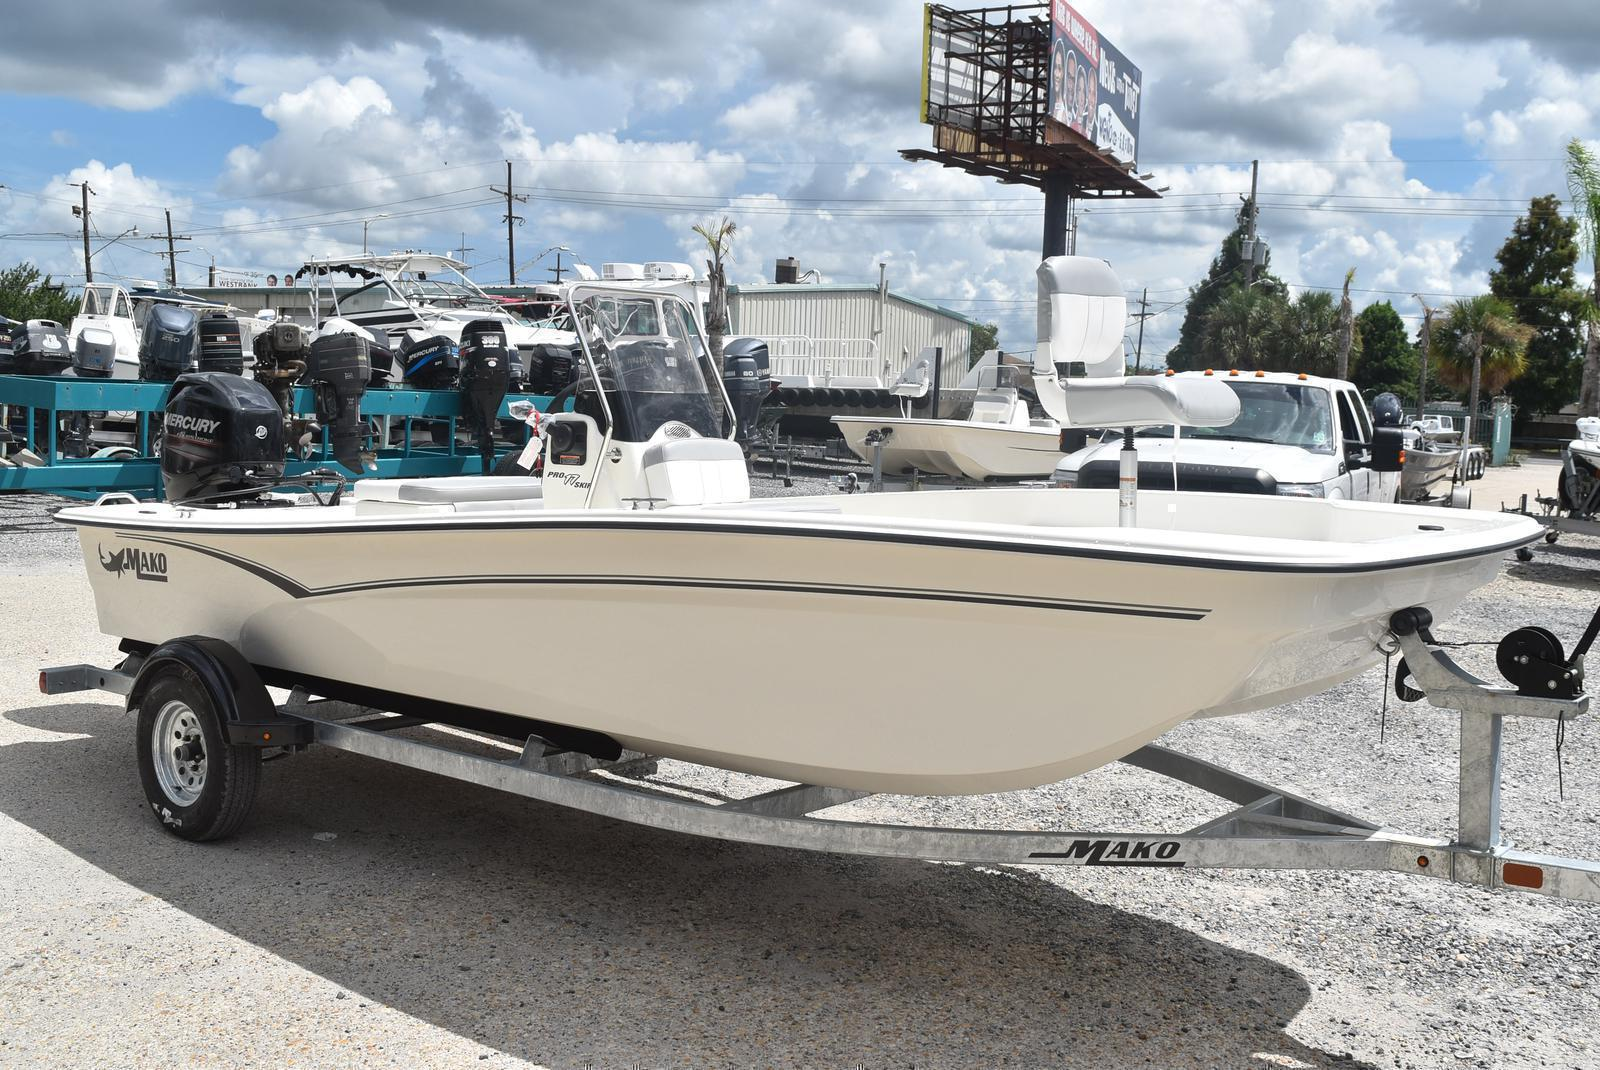 2020 Mako boat for sale, model of the boat is Pro Skiff 17, 75 ELPT & Image # 701 of 702